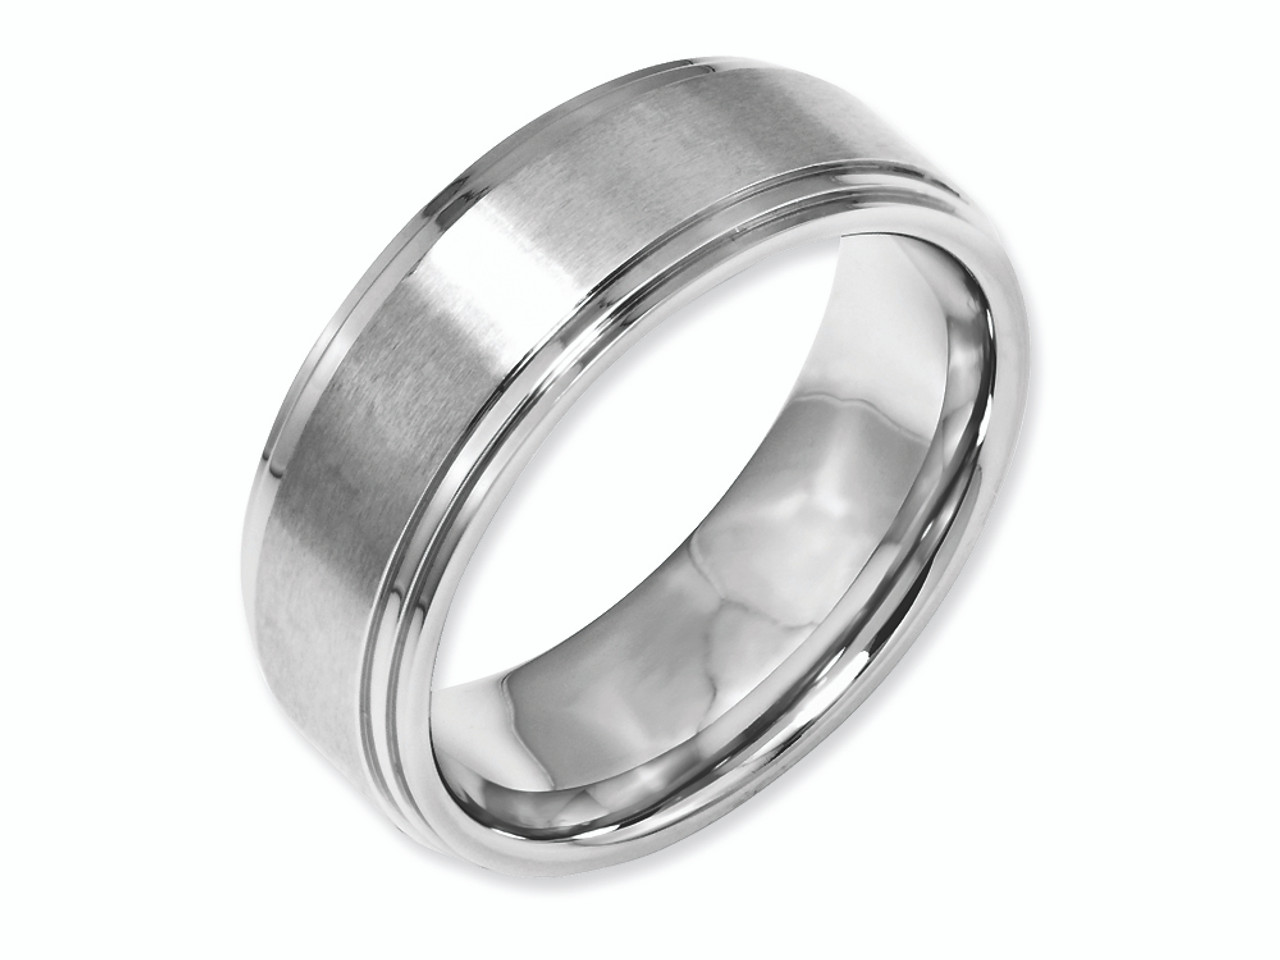 Stainless Steel Ridged Edge 8mm Brushed and Polished Band